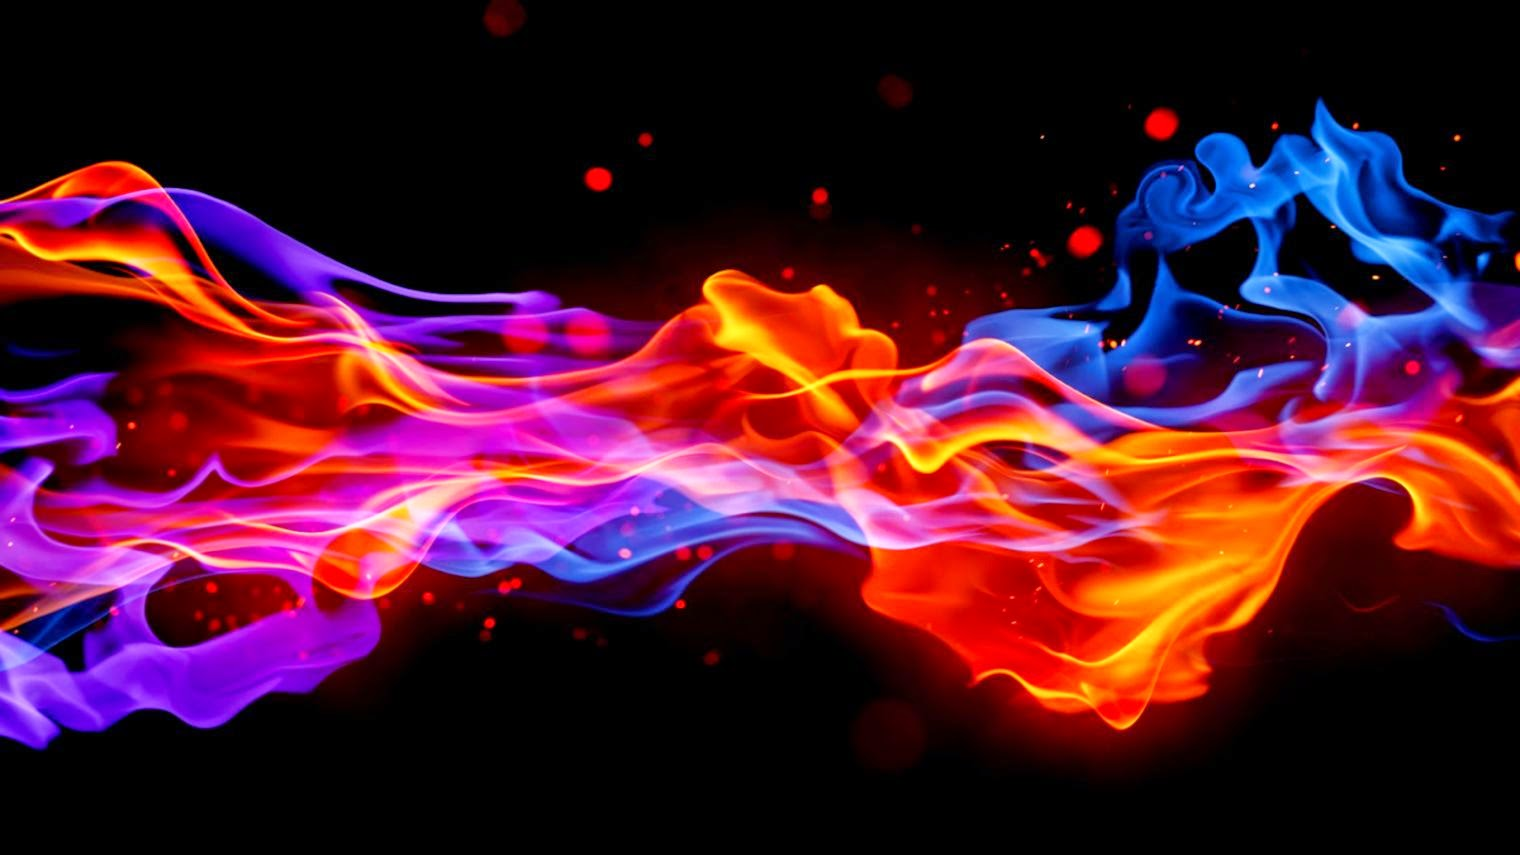 Abstract Wallpaper 1920X1080 | Amazing Wallpapers